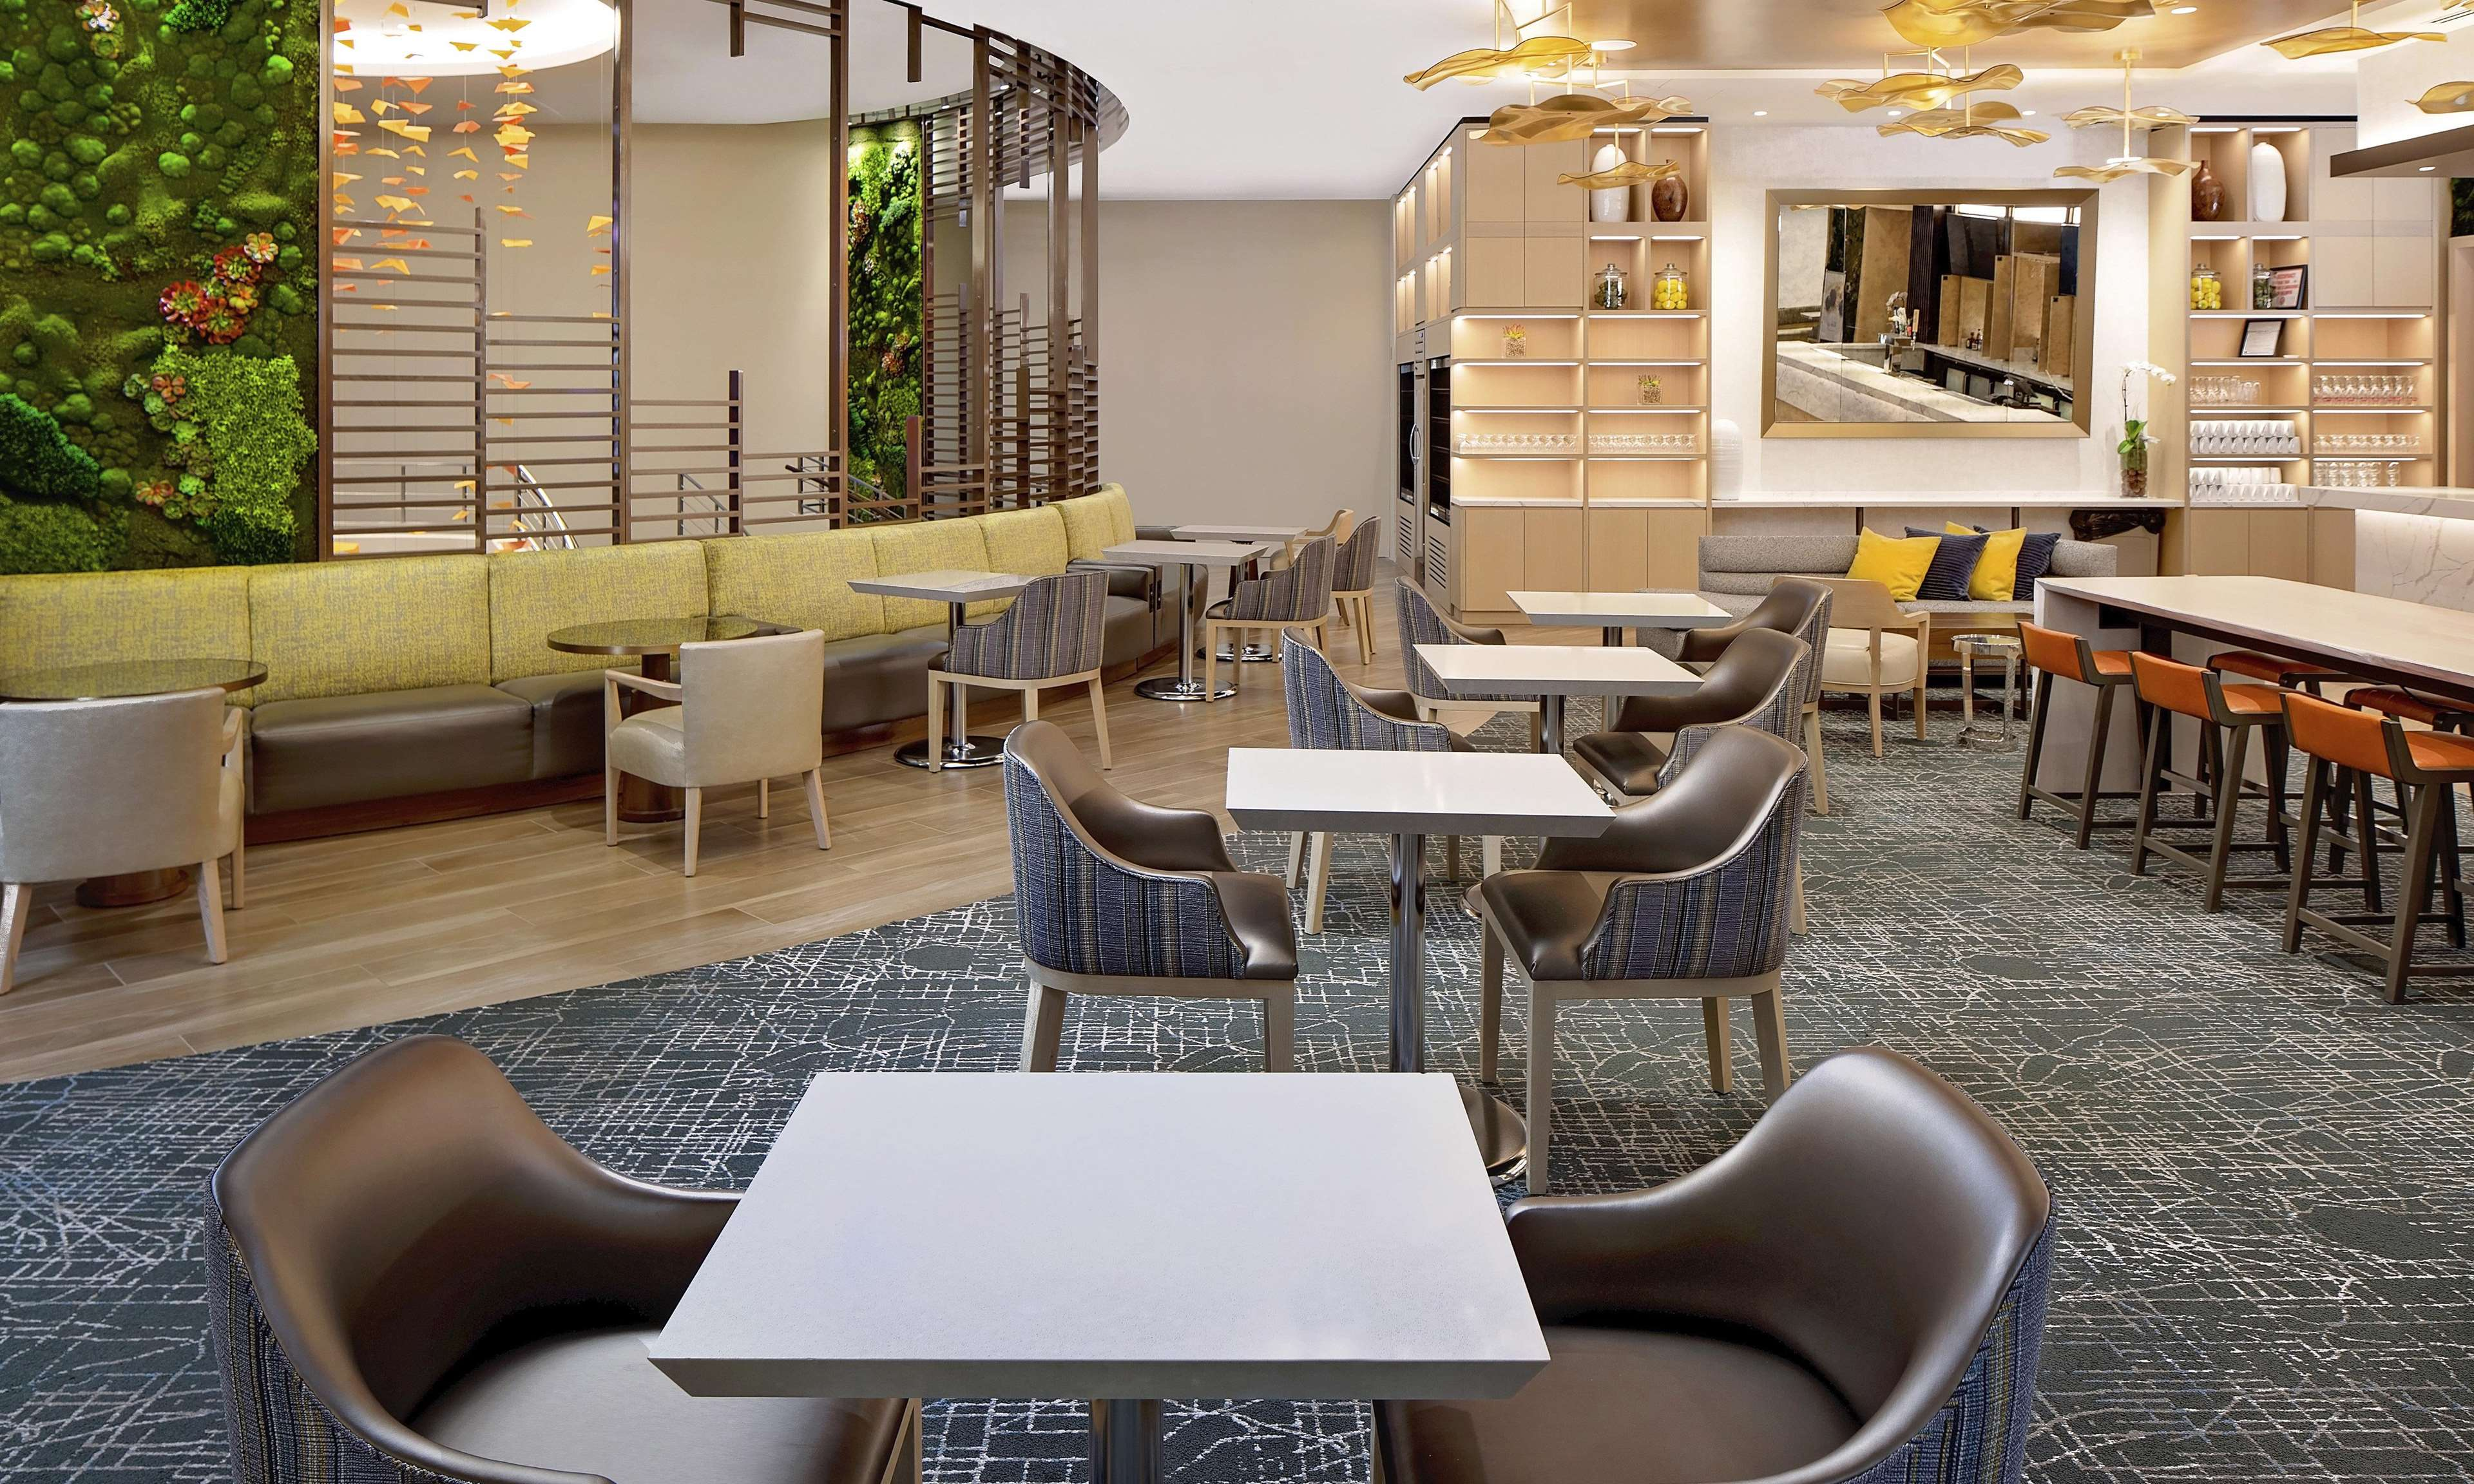 Hilton Grand Vacations Chicago Downtown Magnificent Mile image 5